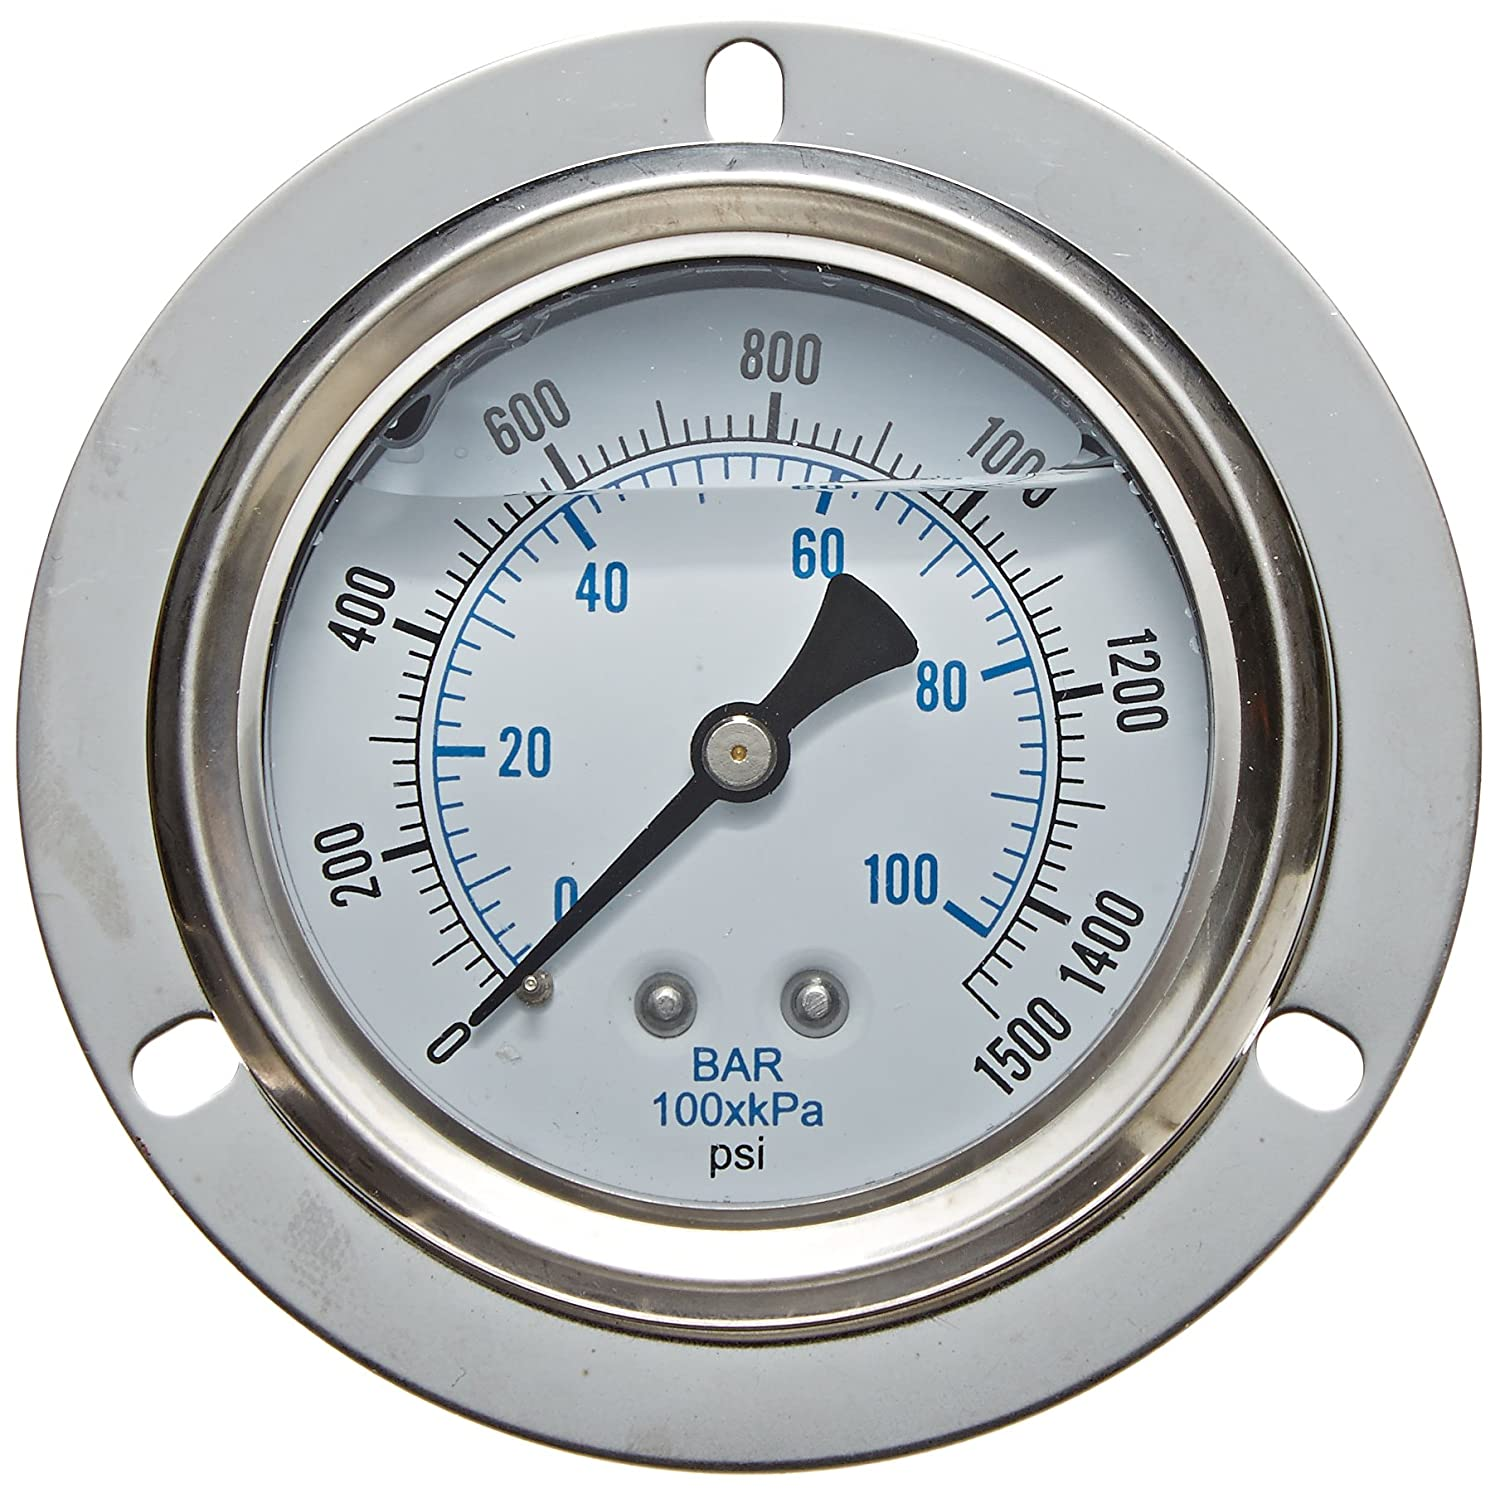 PIC Gauge 204L 204F 2 Dial 0 160 psi Range 1 4 Male NPT Connection Size Front Flanged Panel Mount Glycerine Filled Pressure Gauge with a Stainless Steel Case Brass Internals Stainless Steel Bezel and Polycarbonate Lens